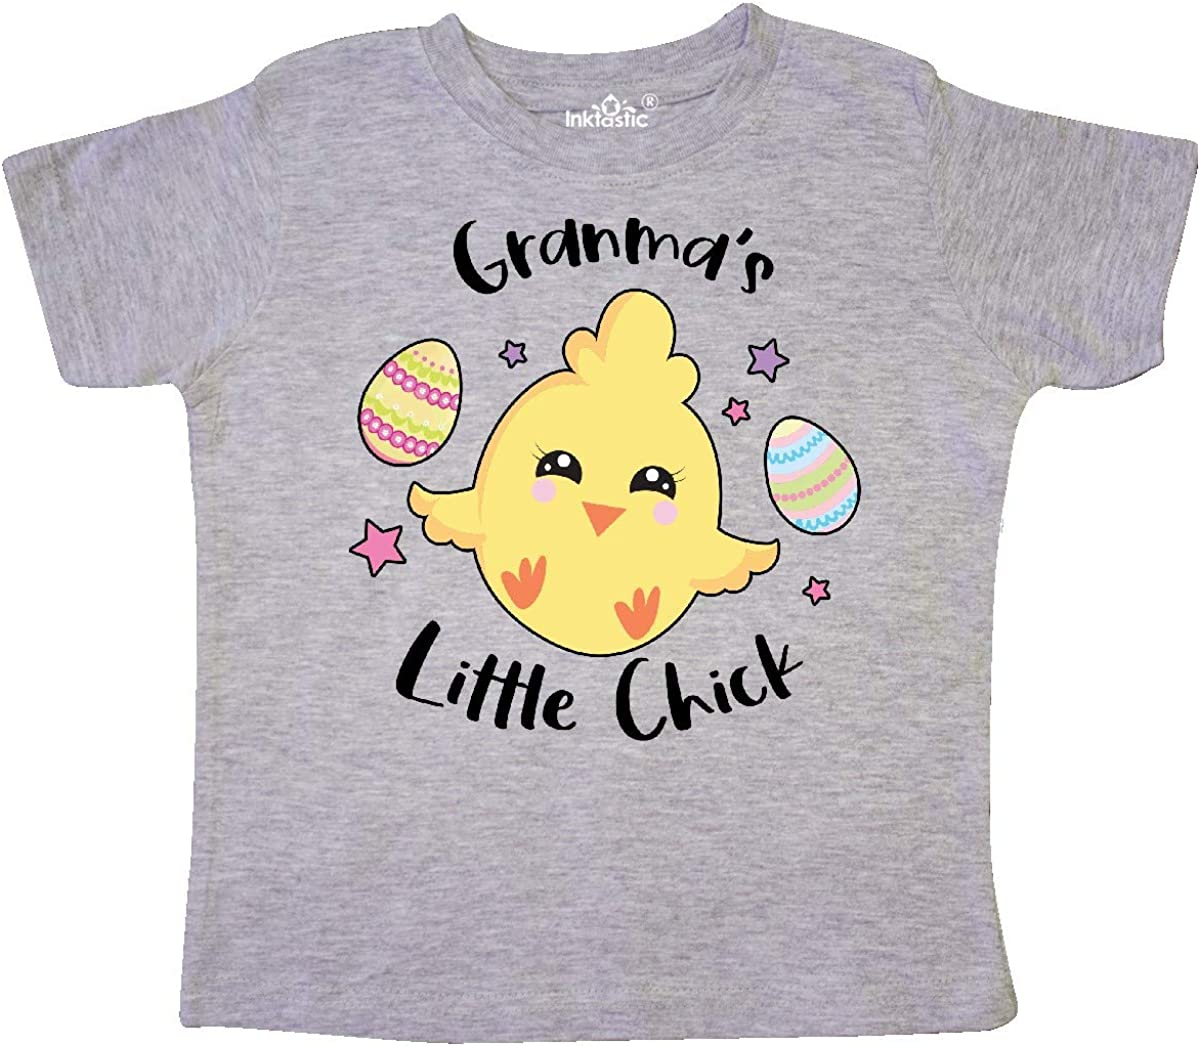 inktastic Happy Easter Granmas Little Chick Toddler T-Shirt